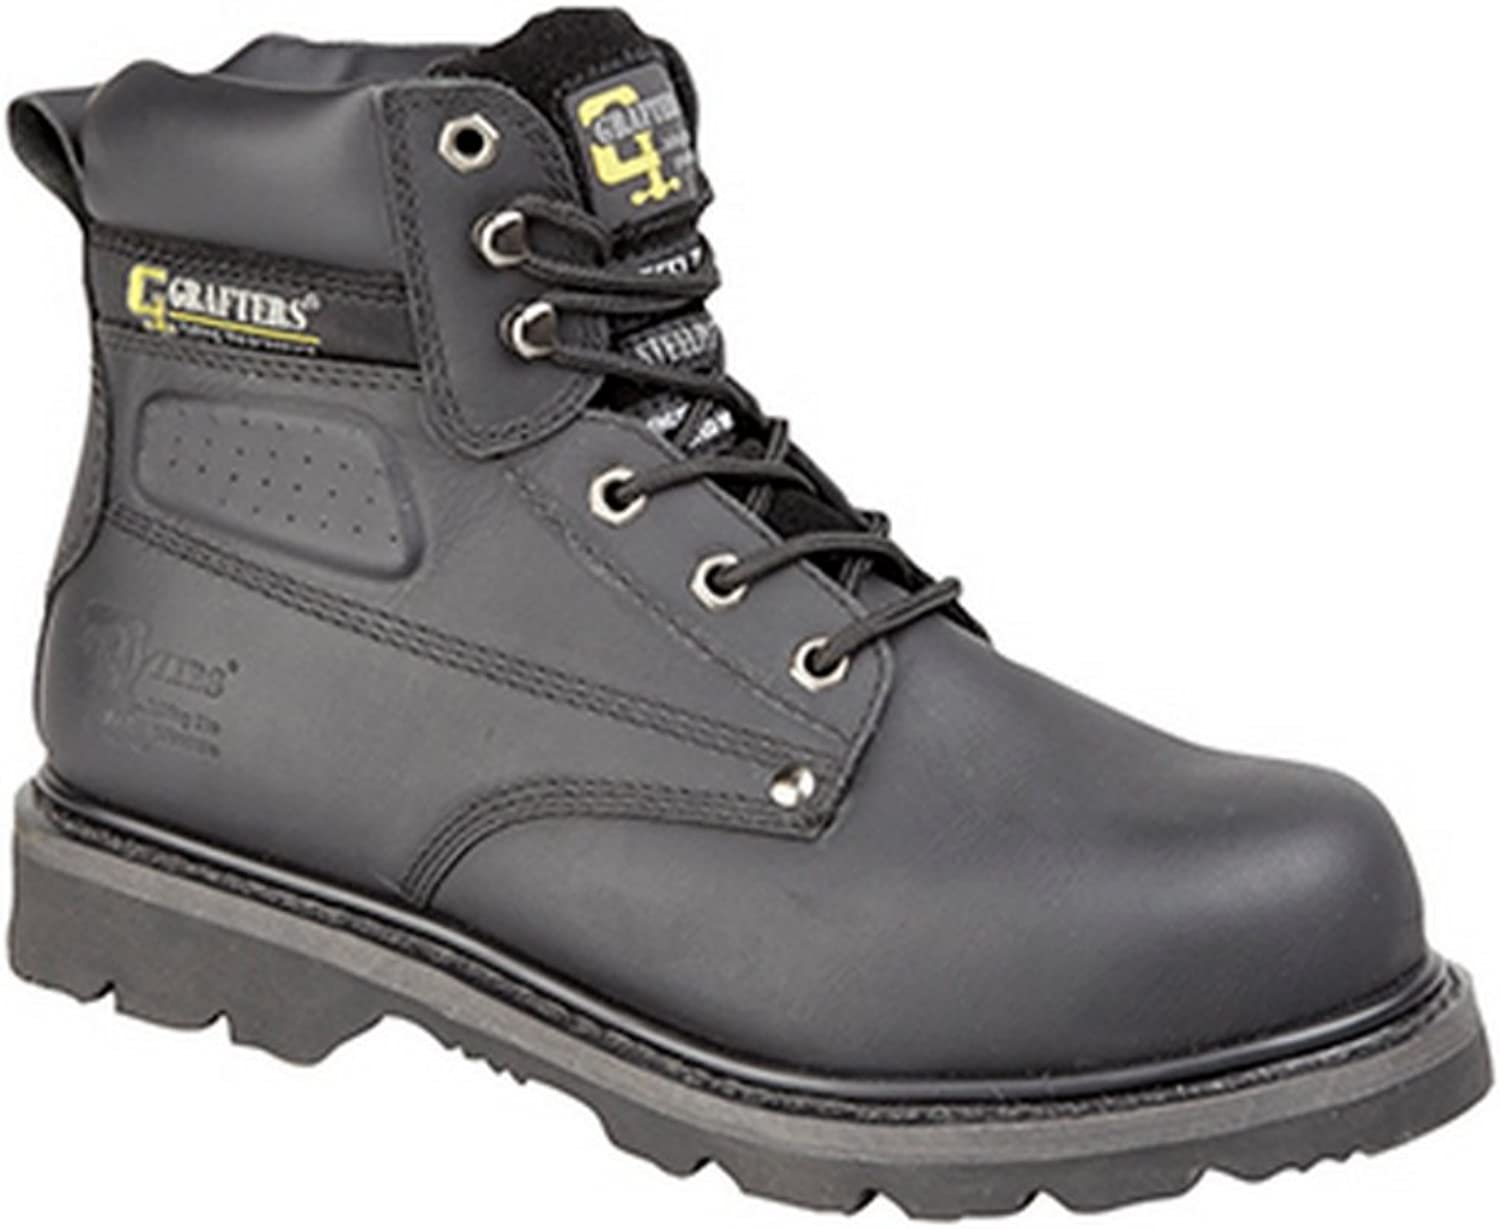 Grafters Black Leather Gladiator Safety Boots